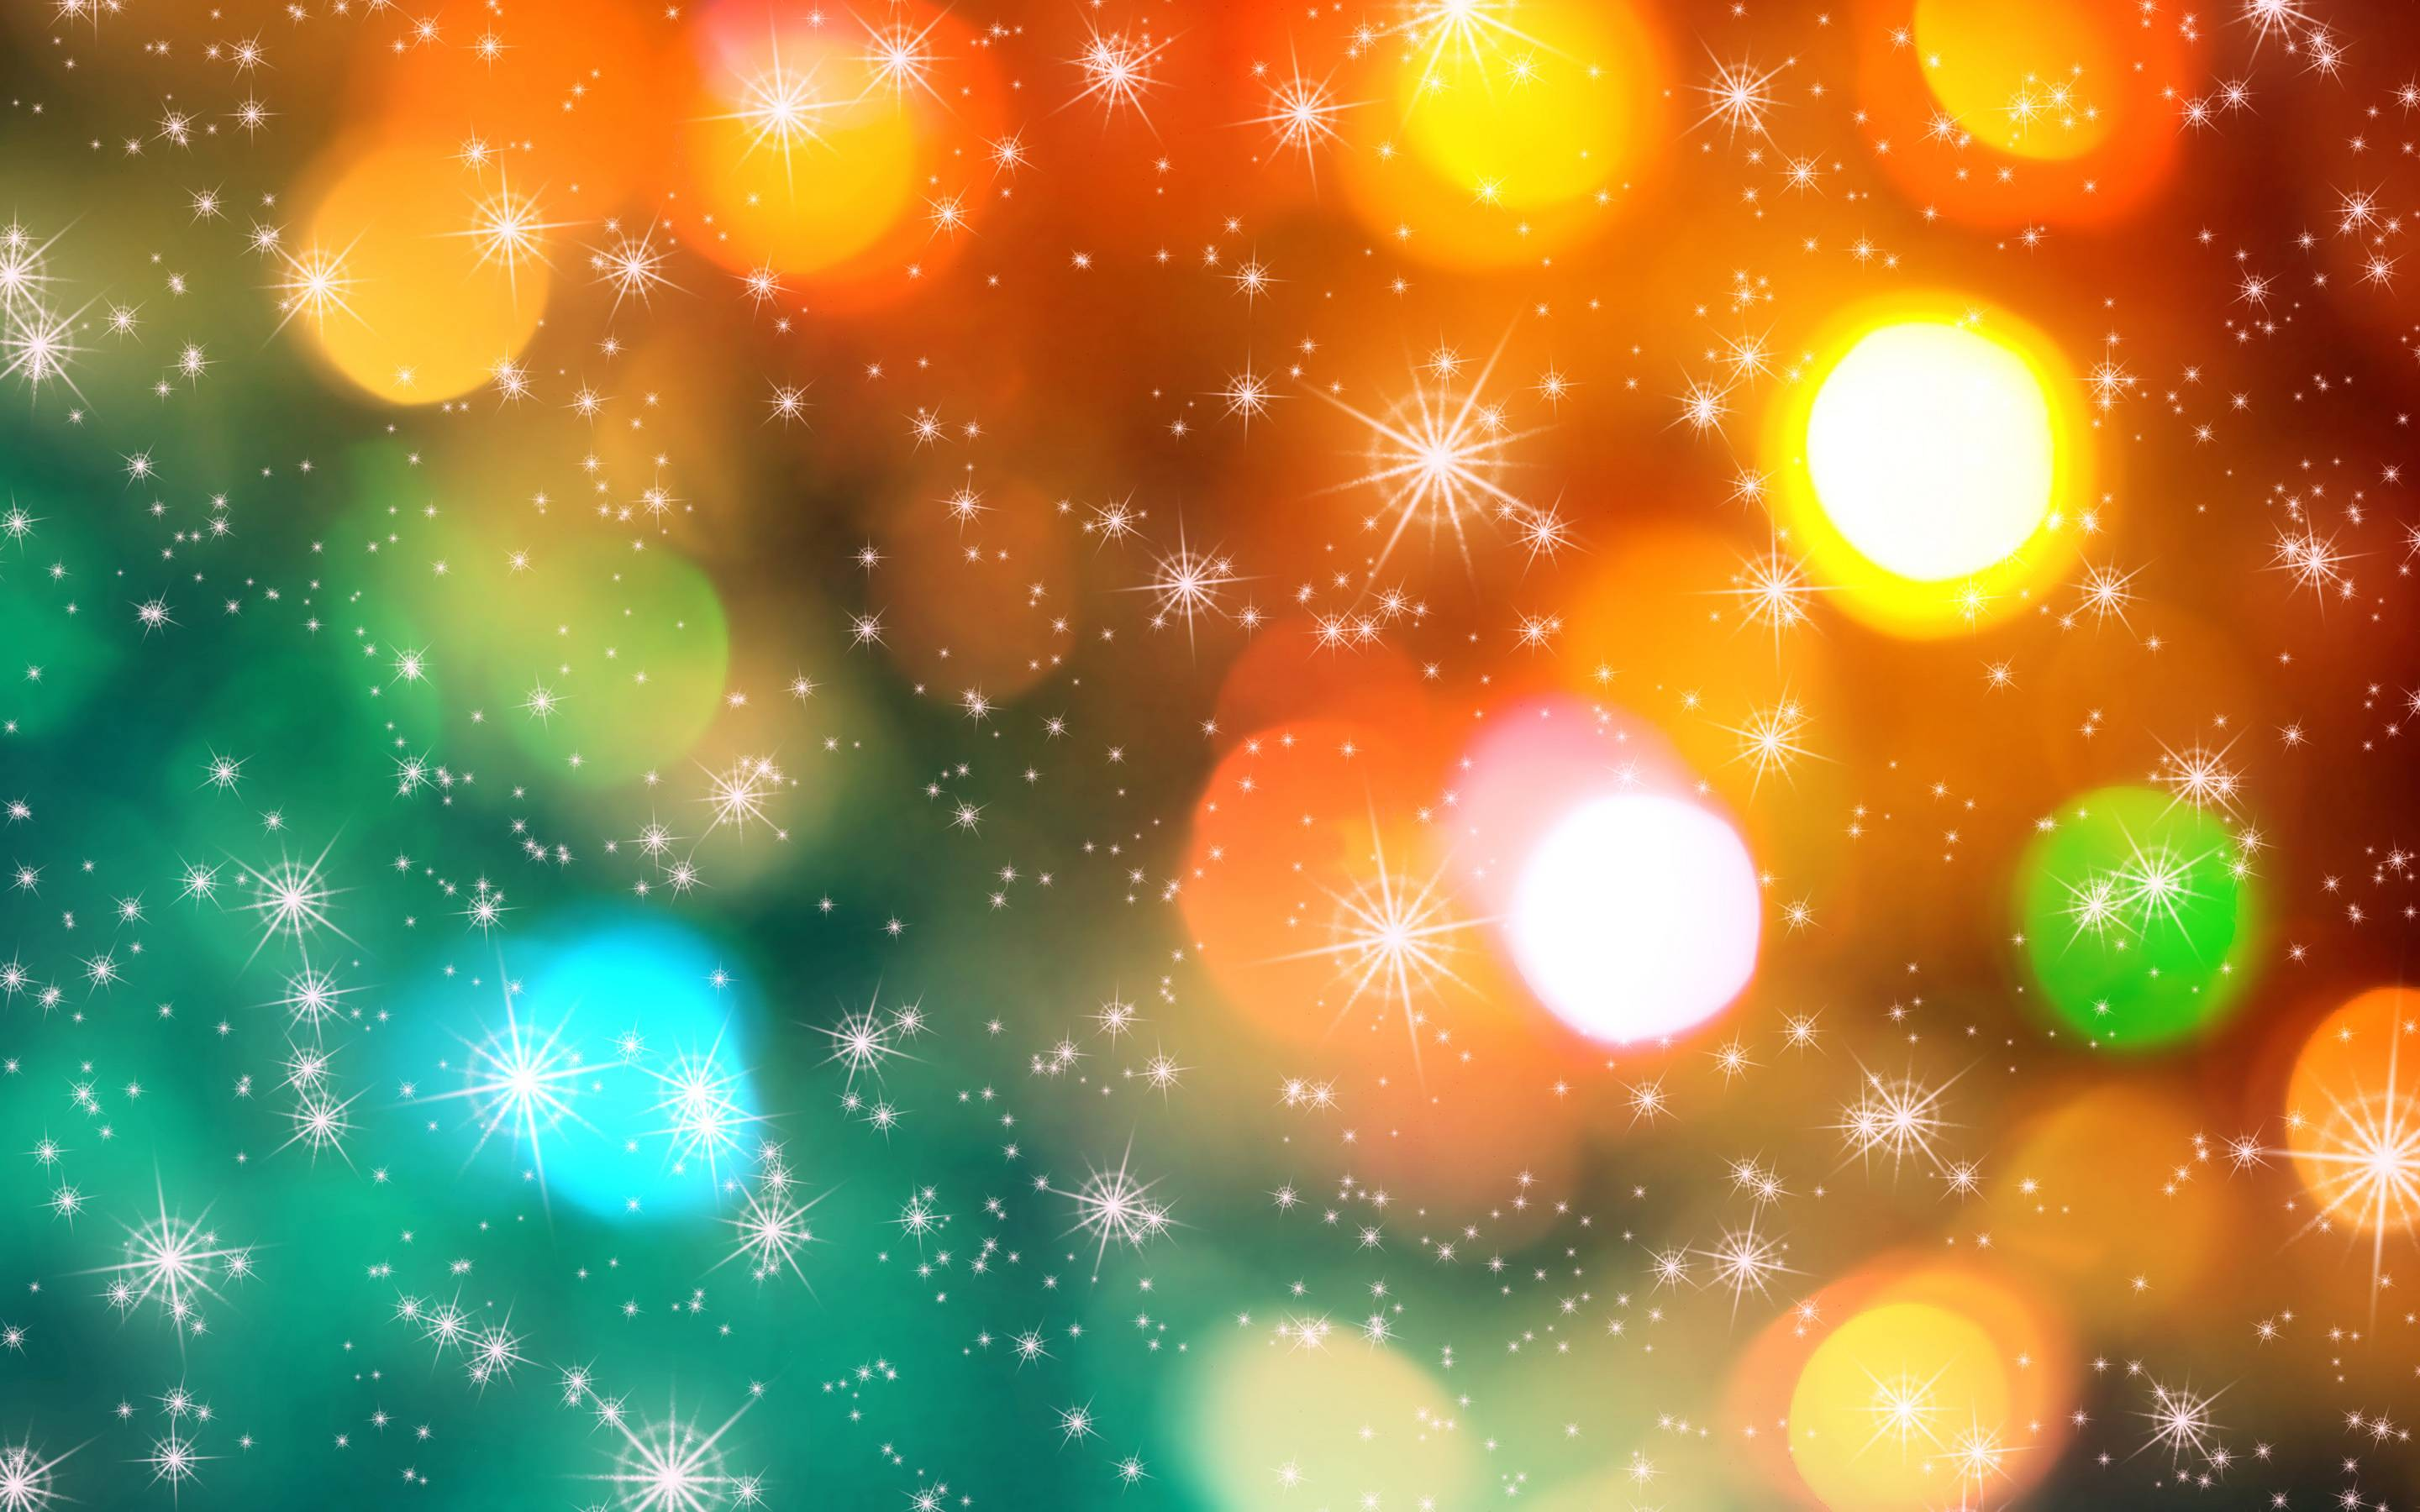 Colorful Christmas Lights Background.Christmas Lights Wallpapers Wallpaper Cave